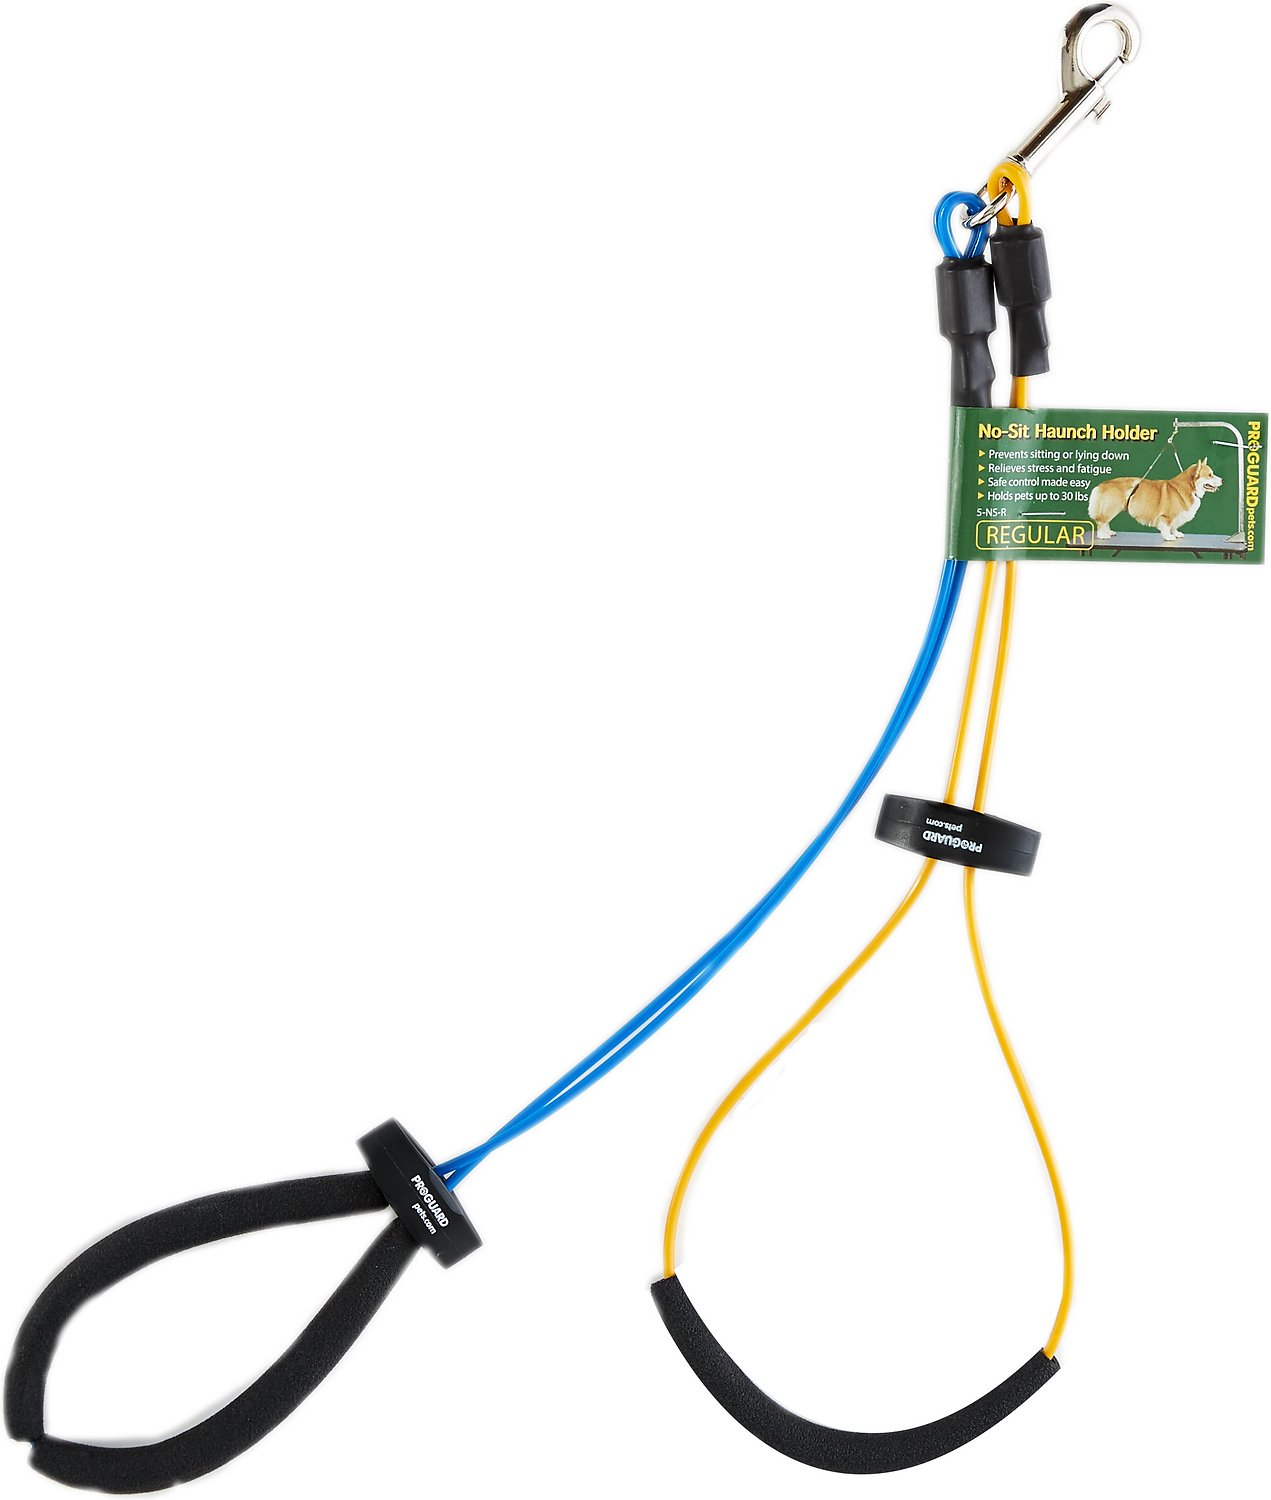 Proguard Pet Products No Sit Haunch Holder Dog Grooming Restraint Electrical Wiring Made Easy Roll Over Image To Zoom In